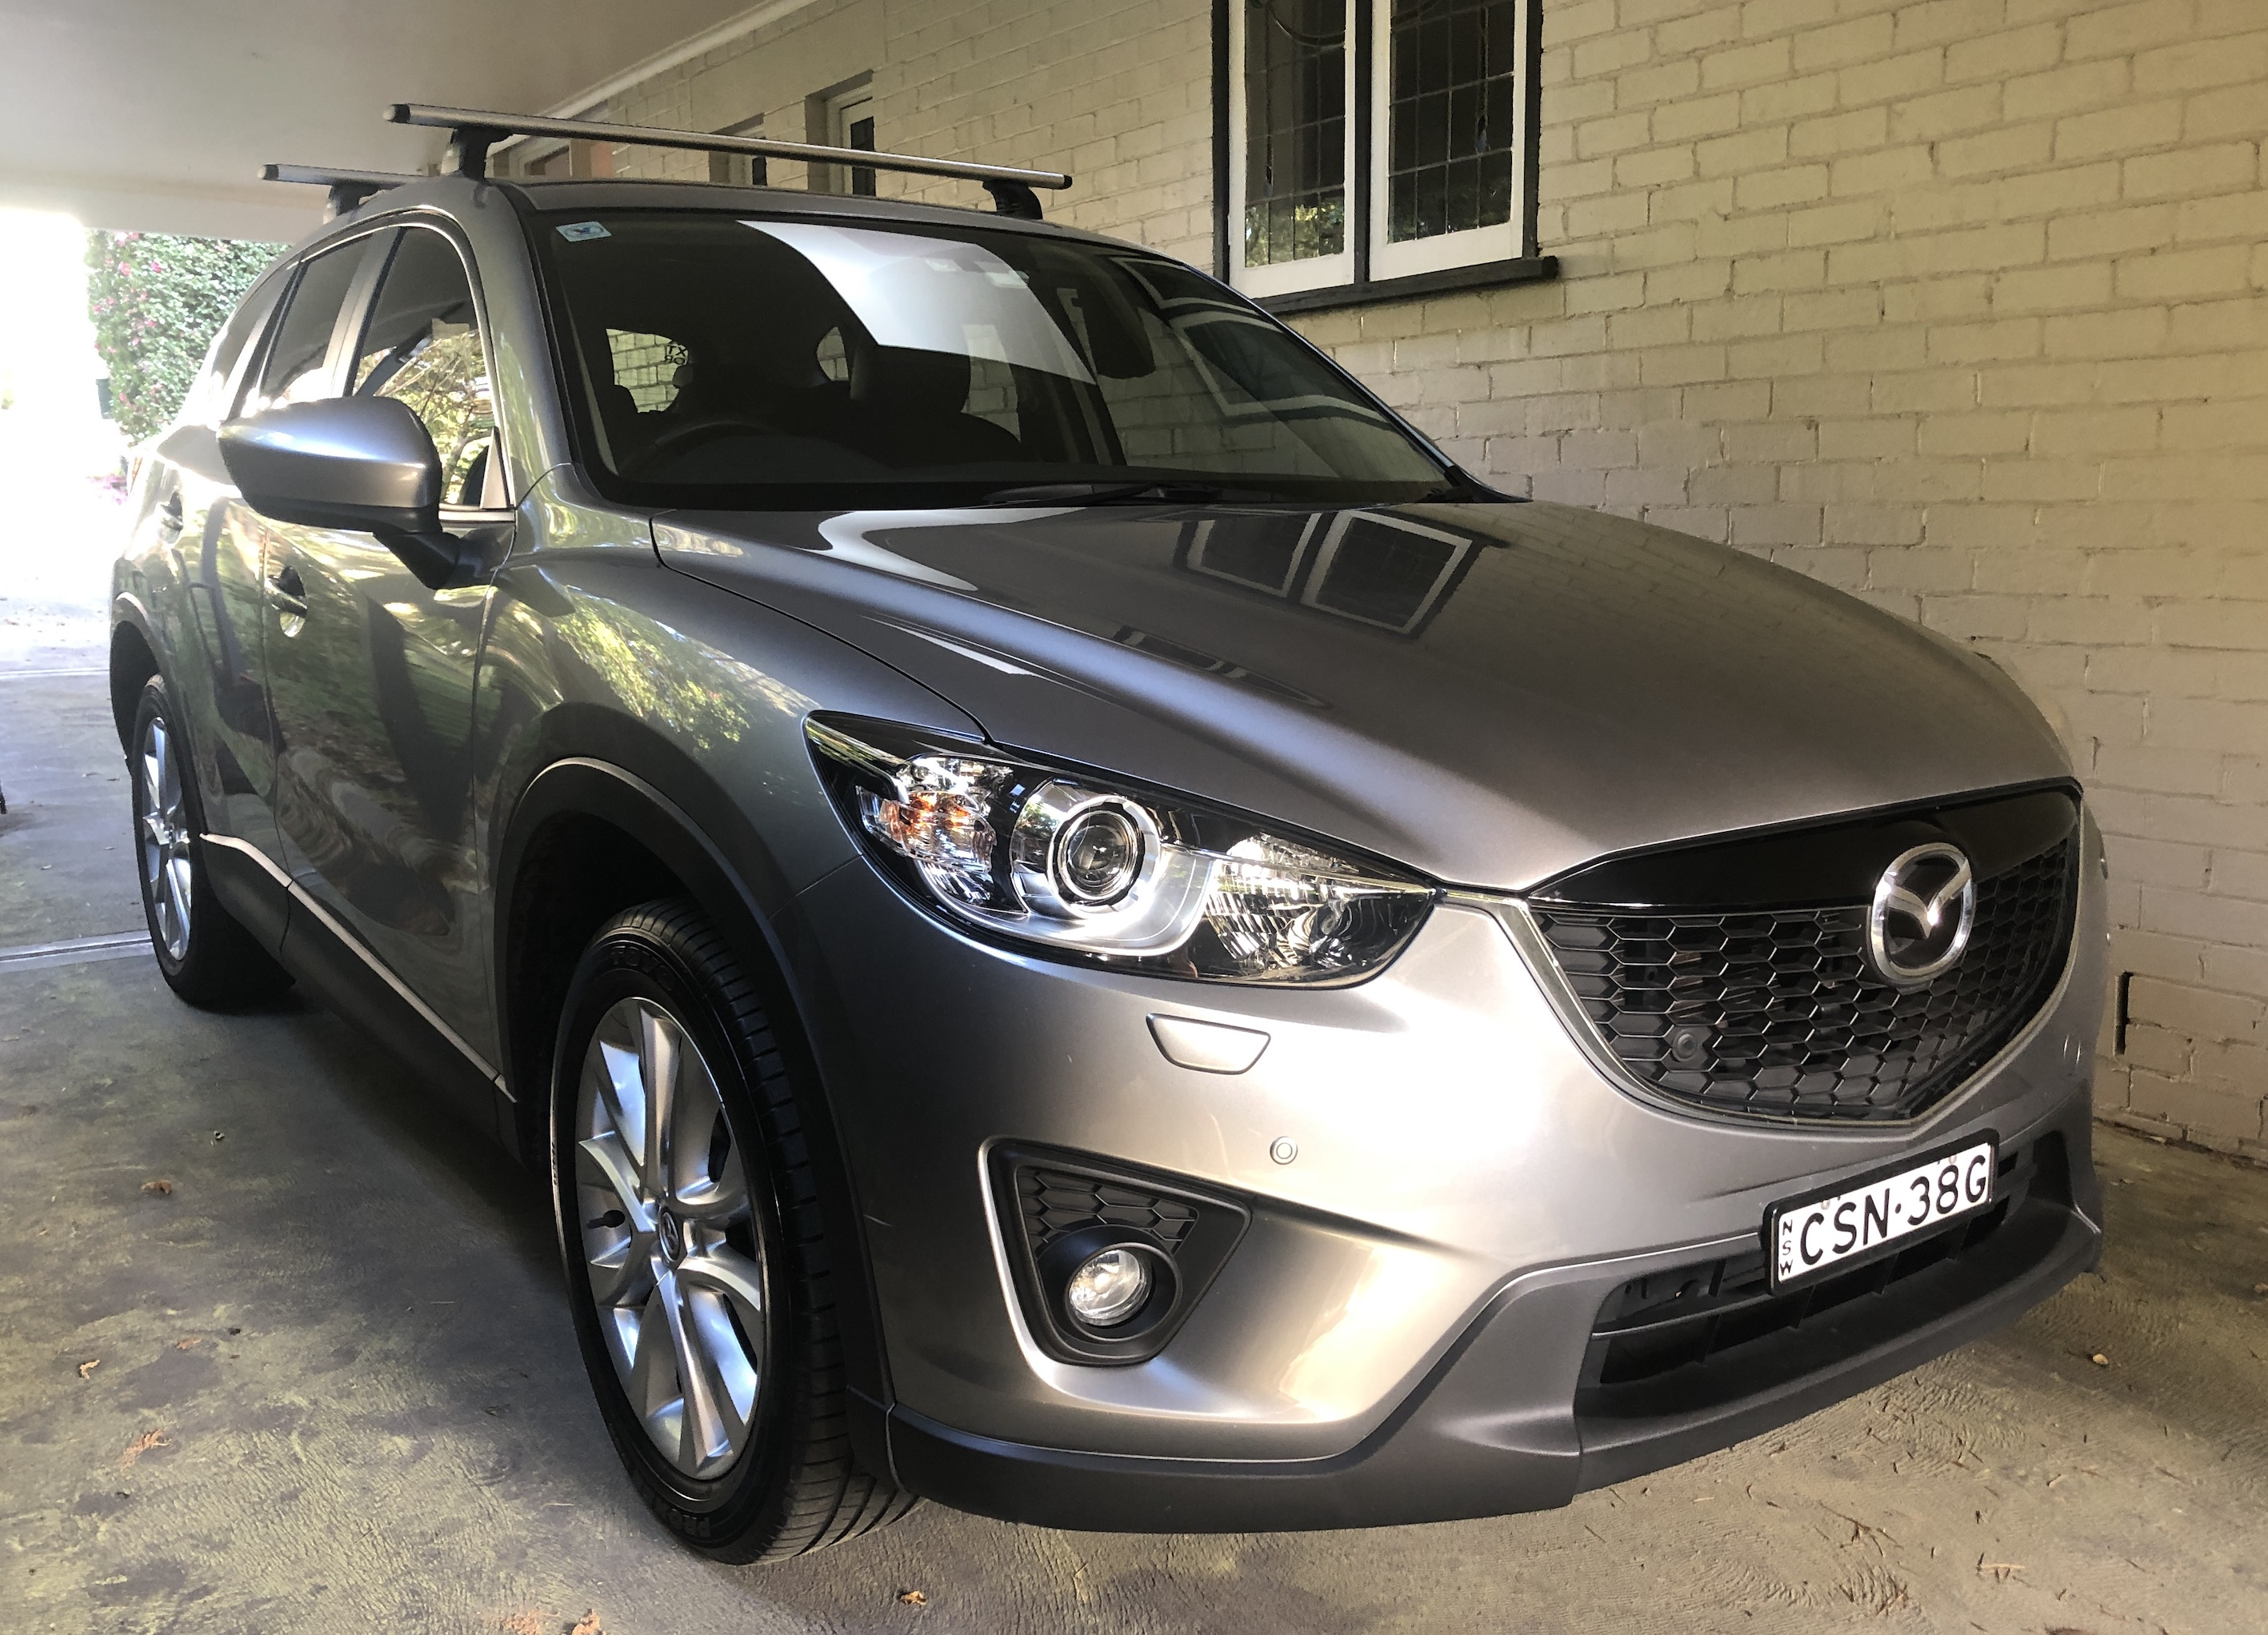 Picture of Myles' 2014 Mazda Cx-5